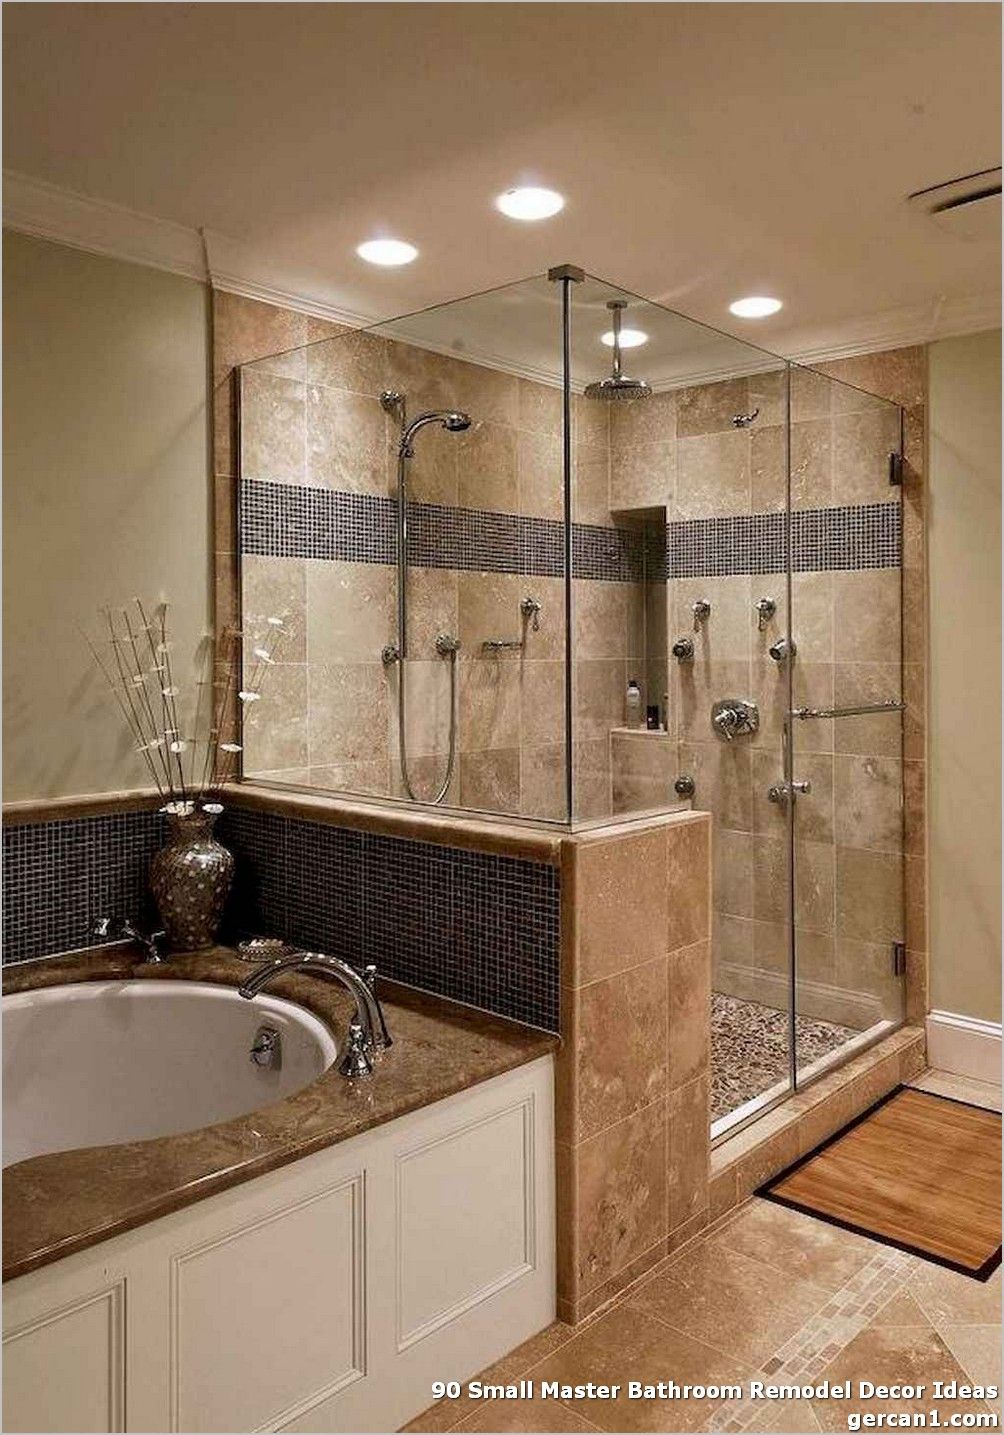 90 Small Master Bathroom Remodel Decor Ideas Bathroom Remodel Master Luxury Master Bathrooms Bathroom Remodel Shower